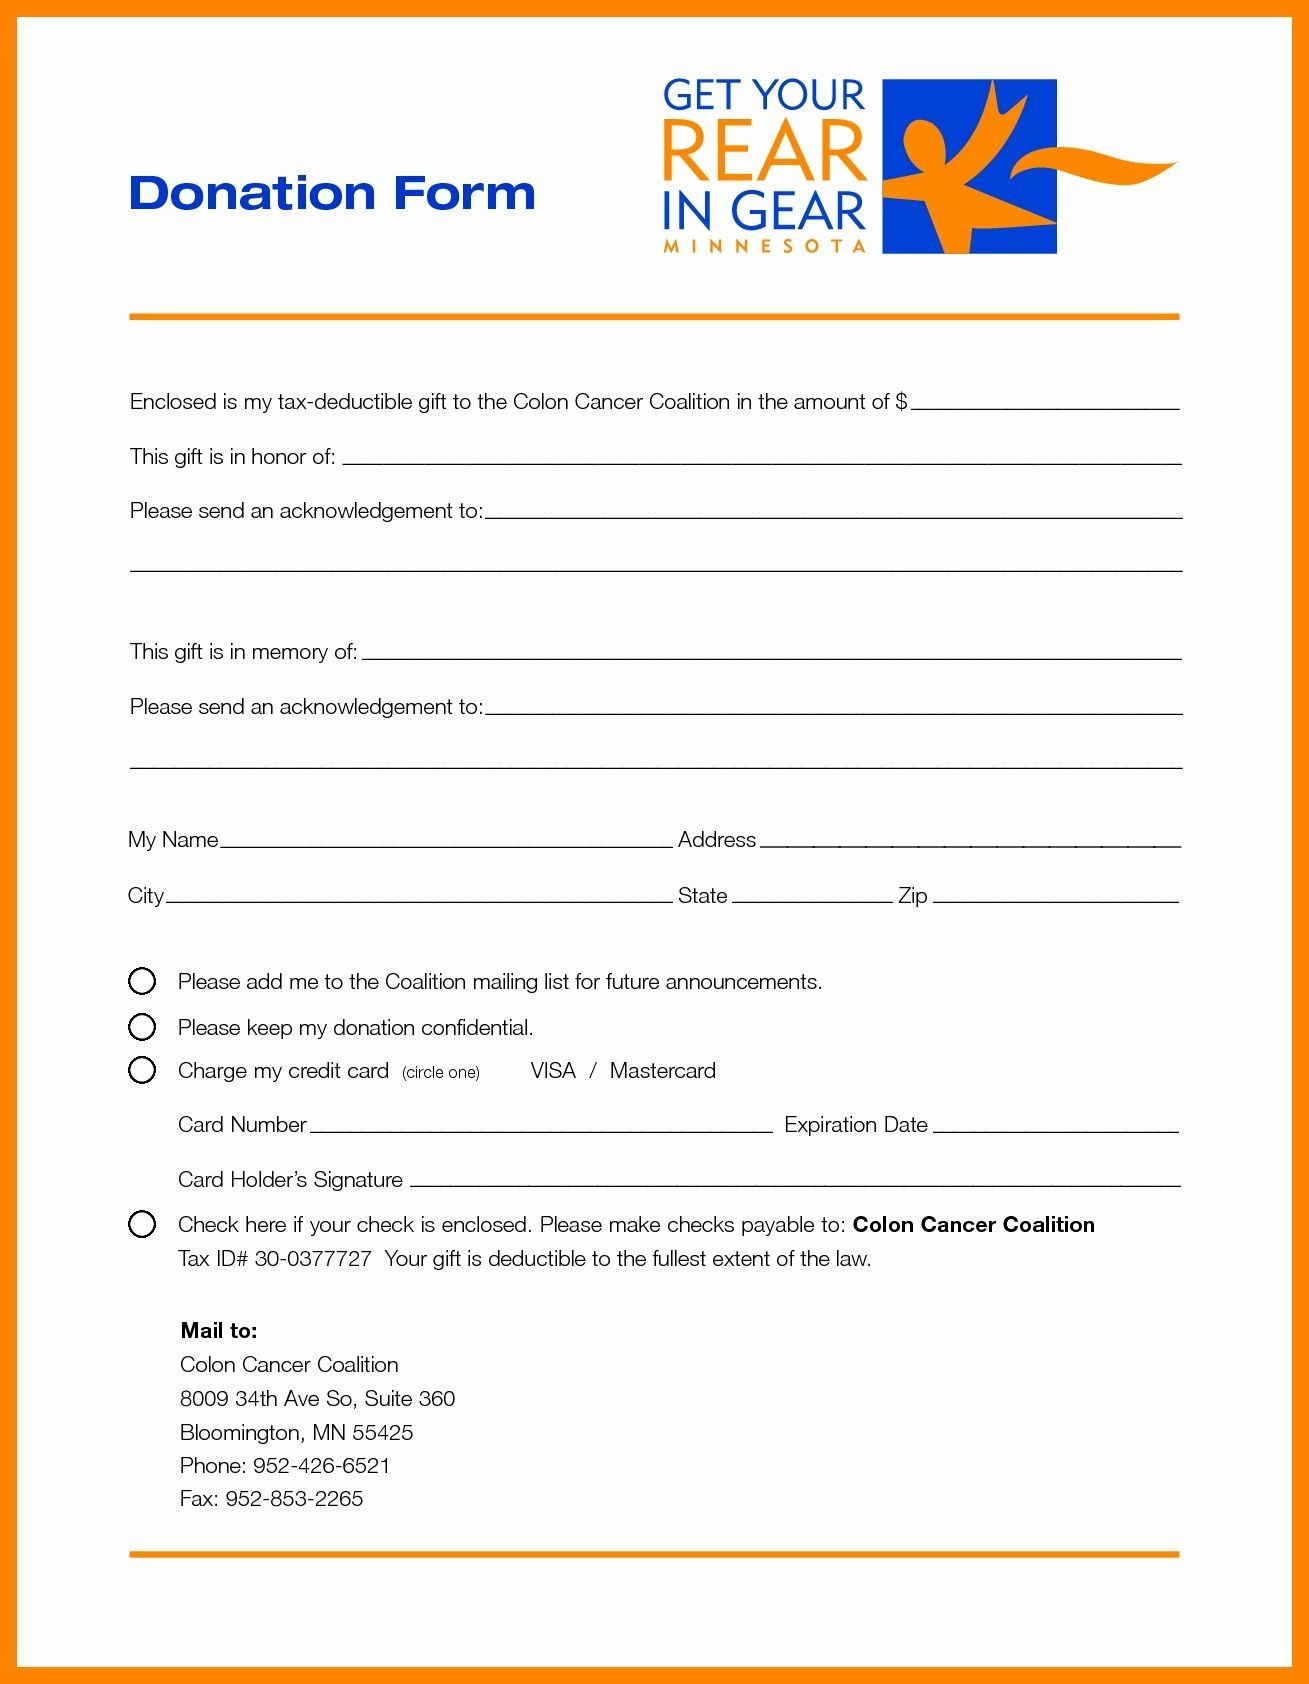 Donor Pledge Card Template In 2021 Donation Form Templates Card Template